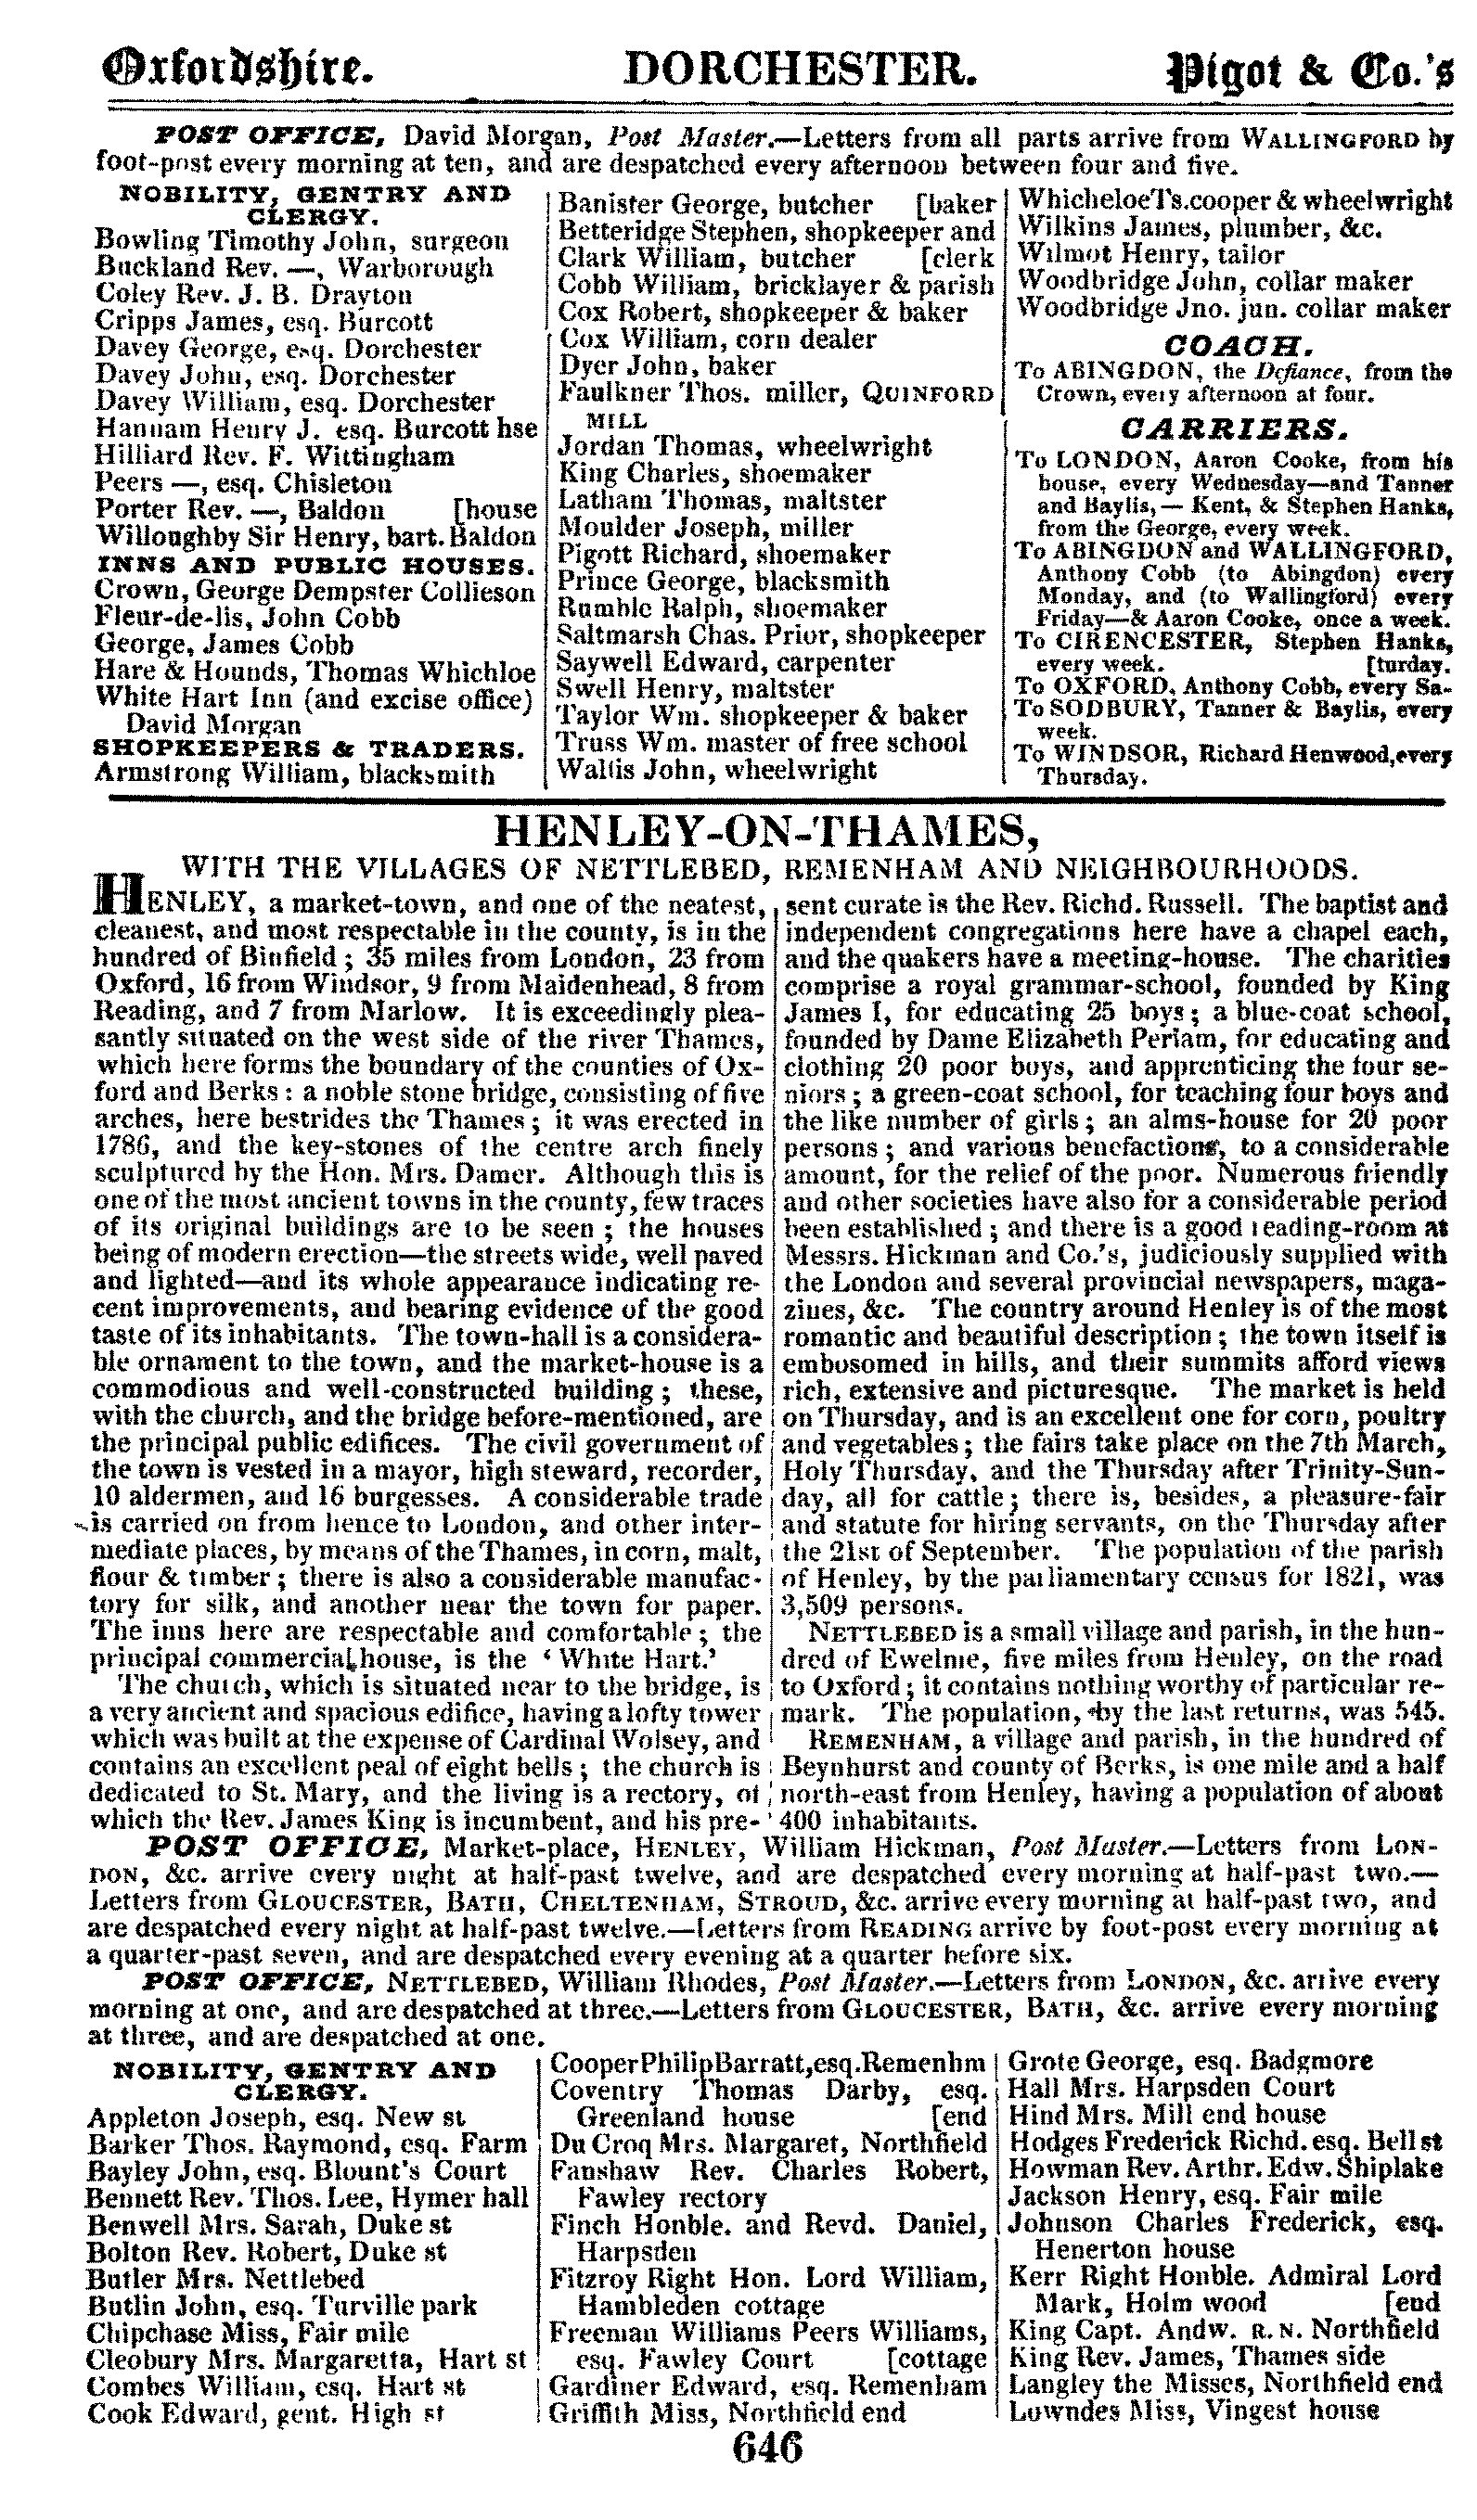 Pigot Directory of Oxfordshire, 1830 page 646 - click to open larger version in a new window